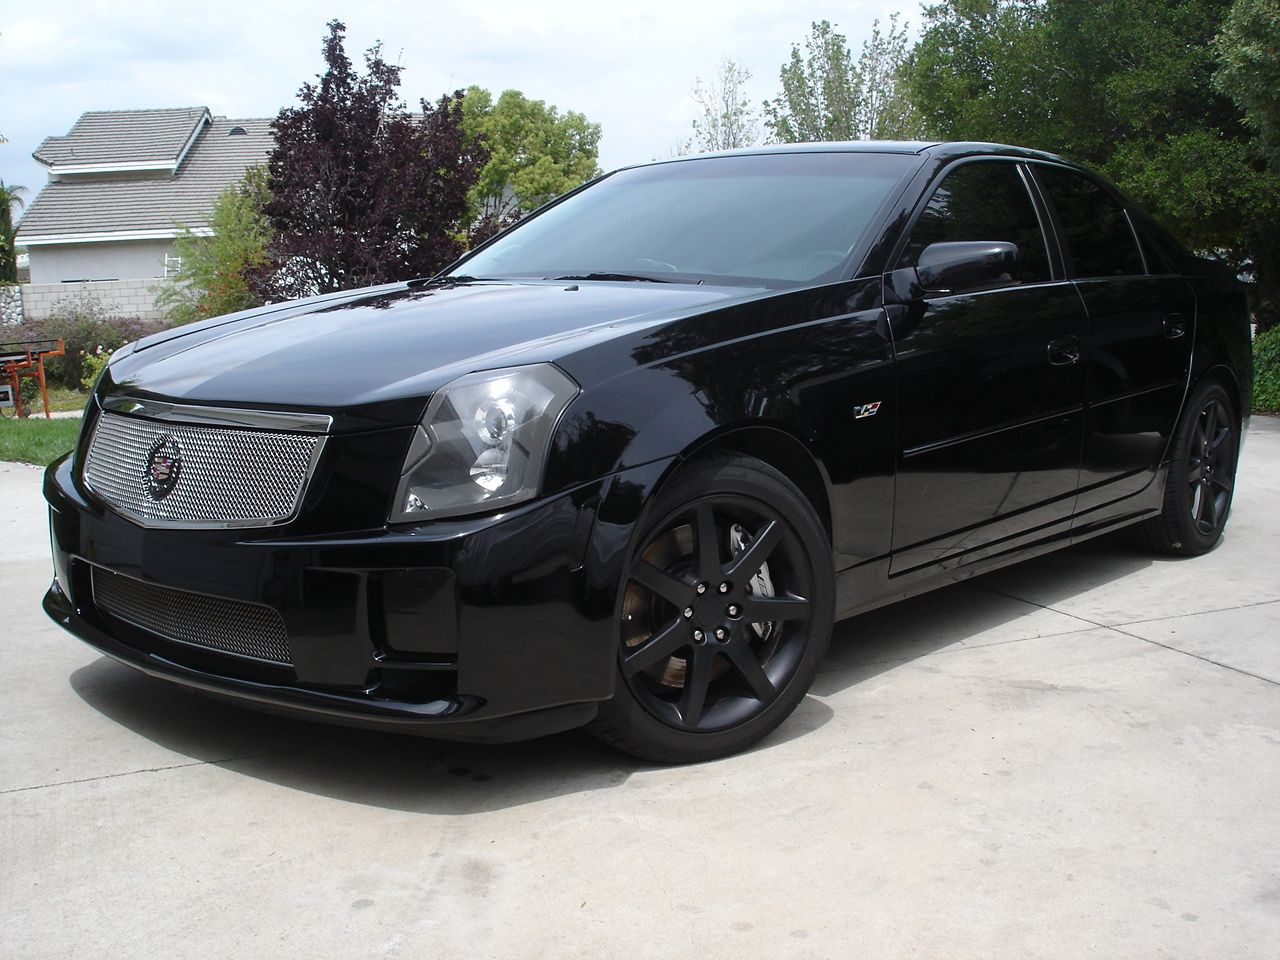 Cadillac CTS blacked outLOOOOVE  When I Win The Lottery